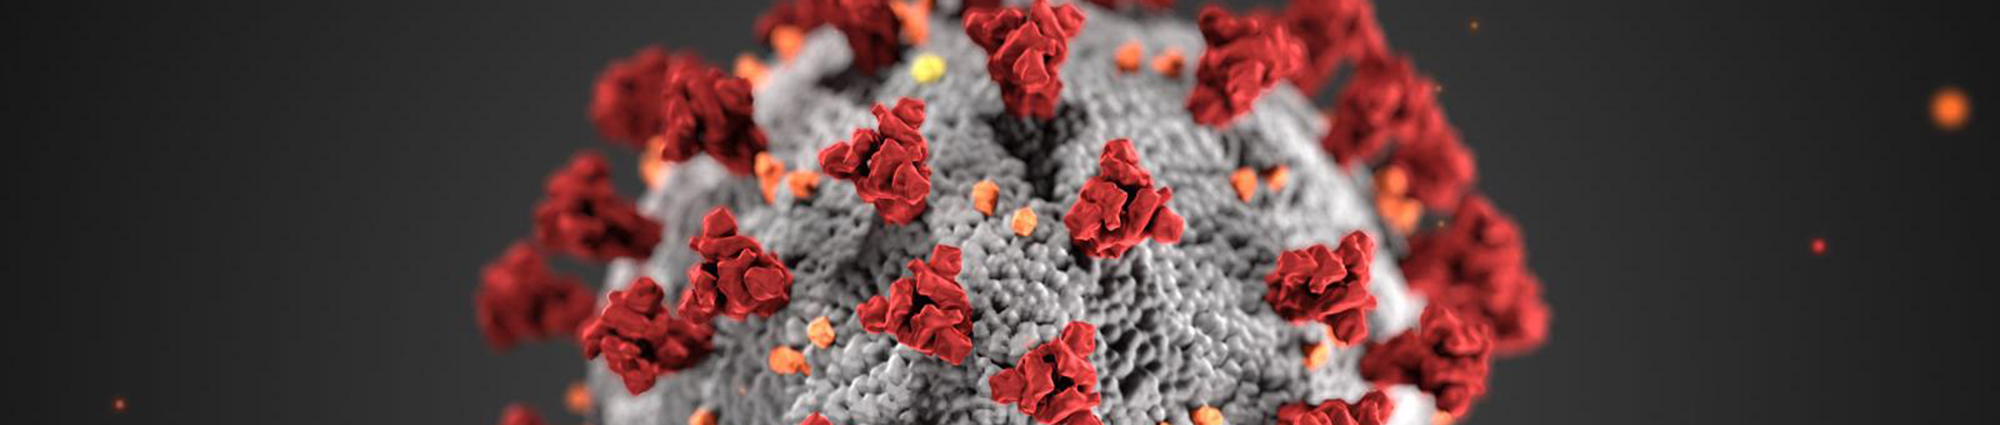 "A 3-D rendering of the microscopic coronavirus, depicting a grayish colored orb with numerous red ""flowers"" protruding."